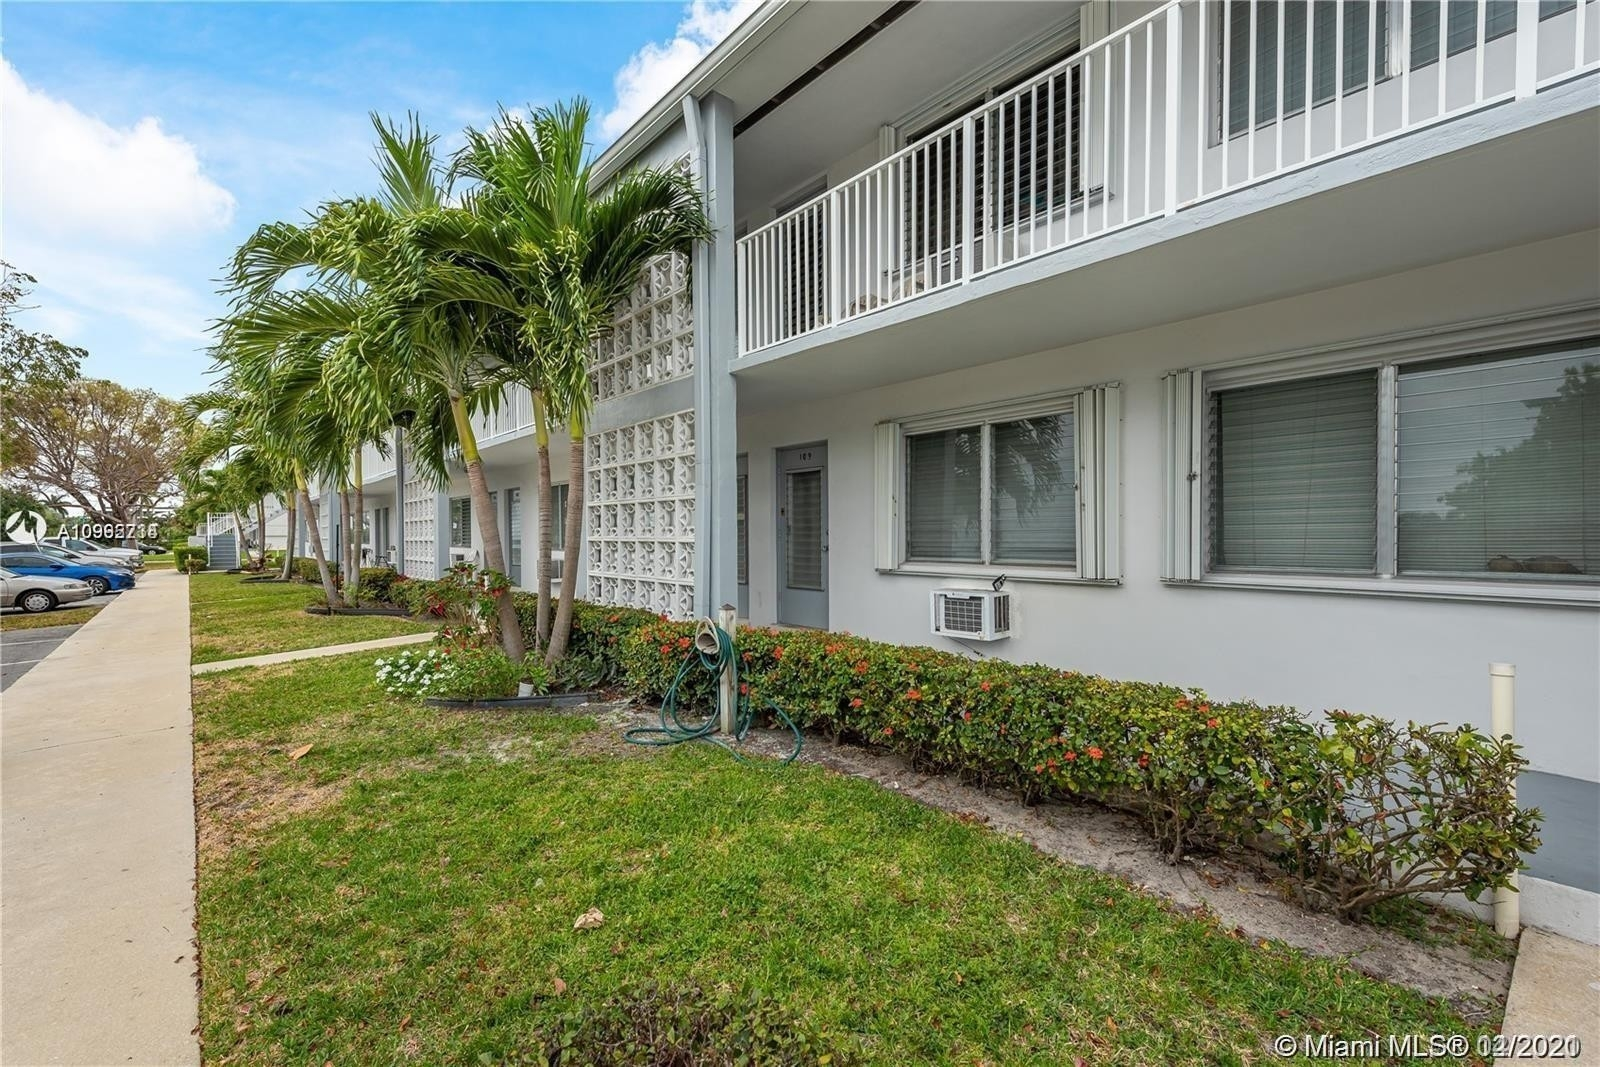 Property à 2020 NE 51st Ct , 204 Knoll Ridge, Fort Lauderdale, FL 33308